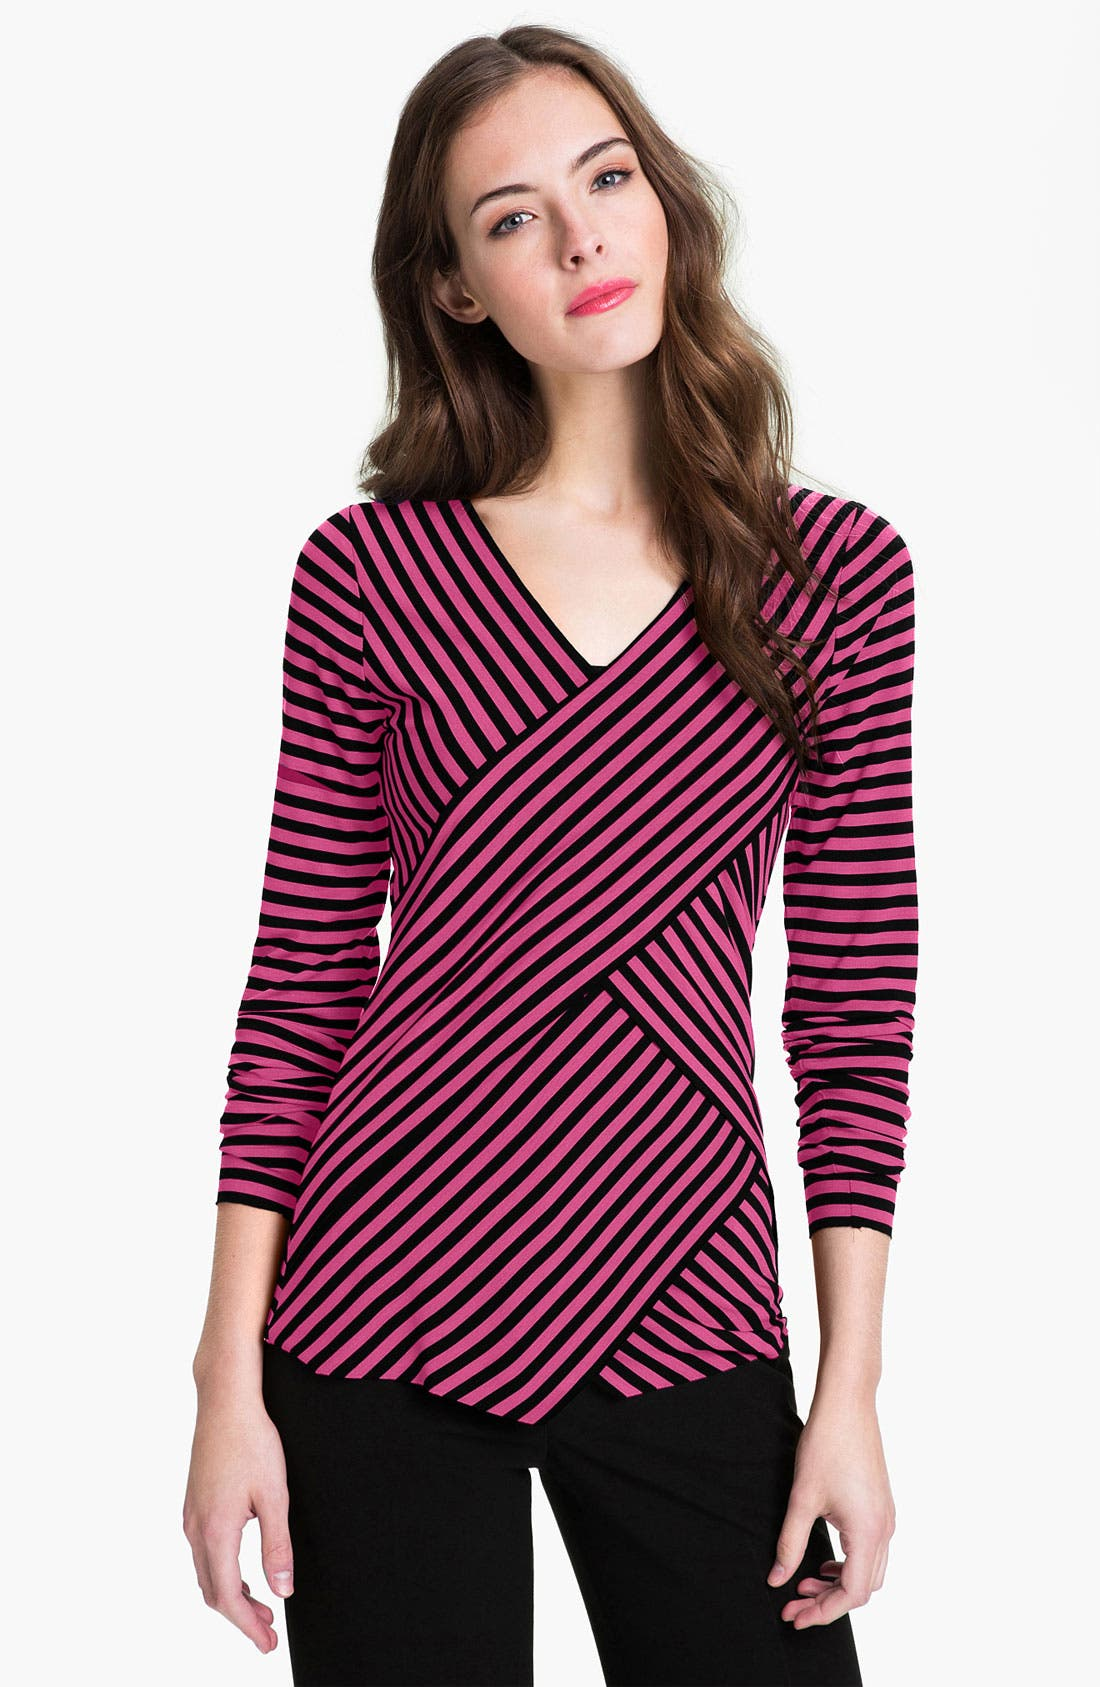 Alternate Image 1 Selected - Vince Camuto Zigzag Panel Stripe Top